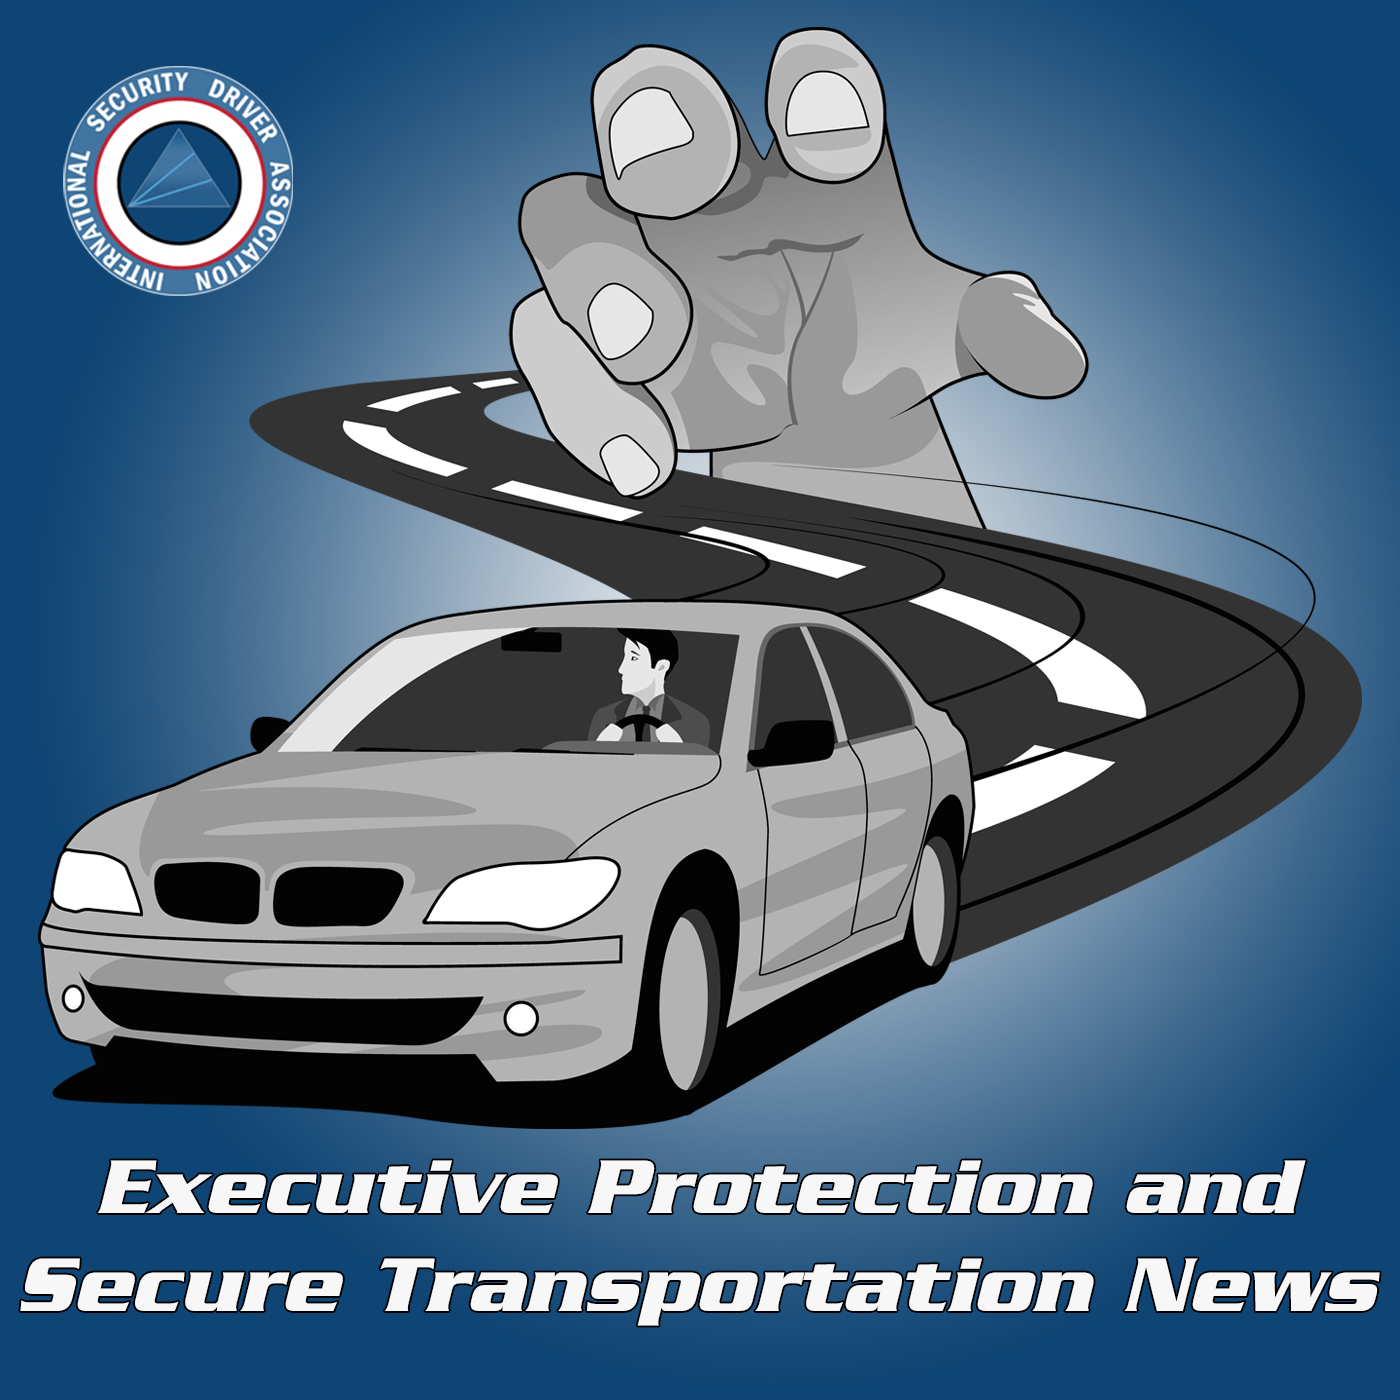 Artwork for Security Driver / Handyman / Security Professional